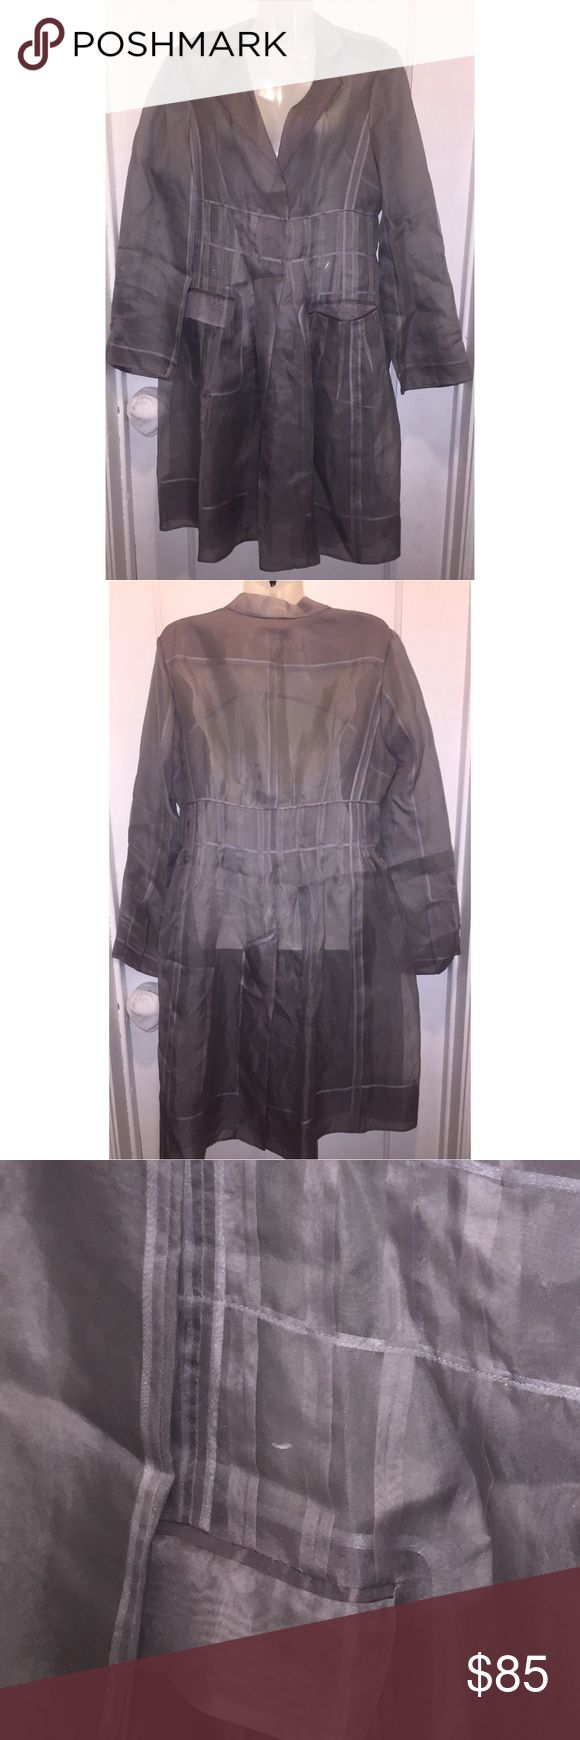 Bcbgmaxazria runway organza silk coat Excellent condition . Flaw shown in last pic. Belt not included BCBGMaxAzria Jackets & Coats Trench Coats